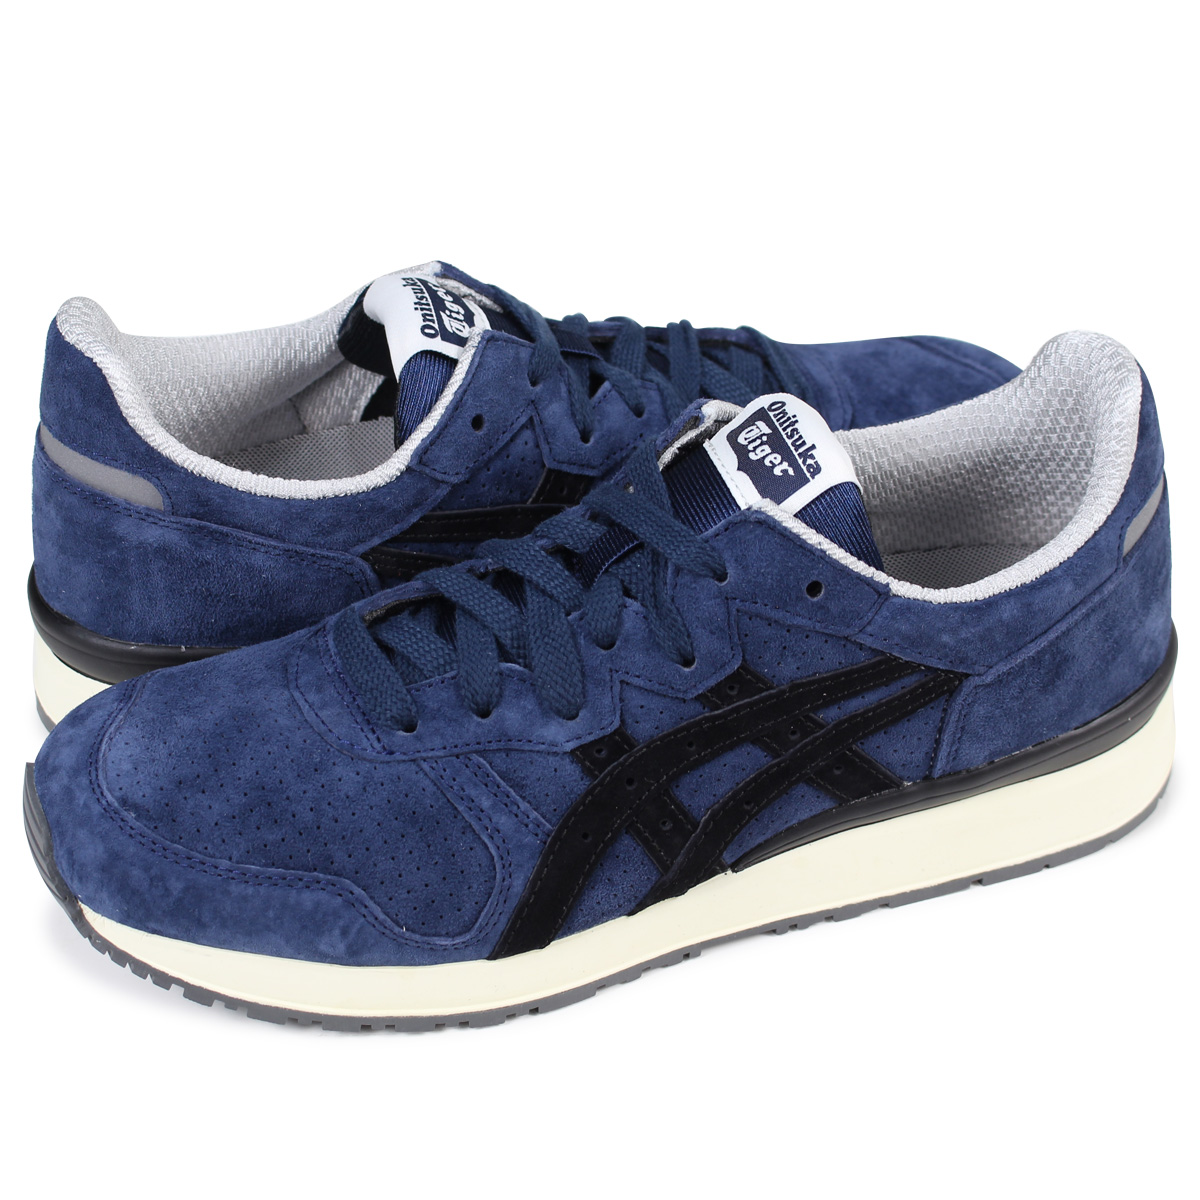 100% authentic 9d475 e7211 Onitsuka Tiger TIGER ALLY Onitsuka tiger tiger Alley men gap Dis sneakers  D701L-5890 TH701L-5890 navy [load planned Shinnyu load in reservation ...